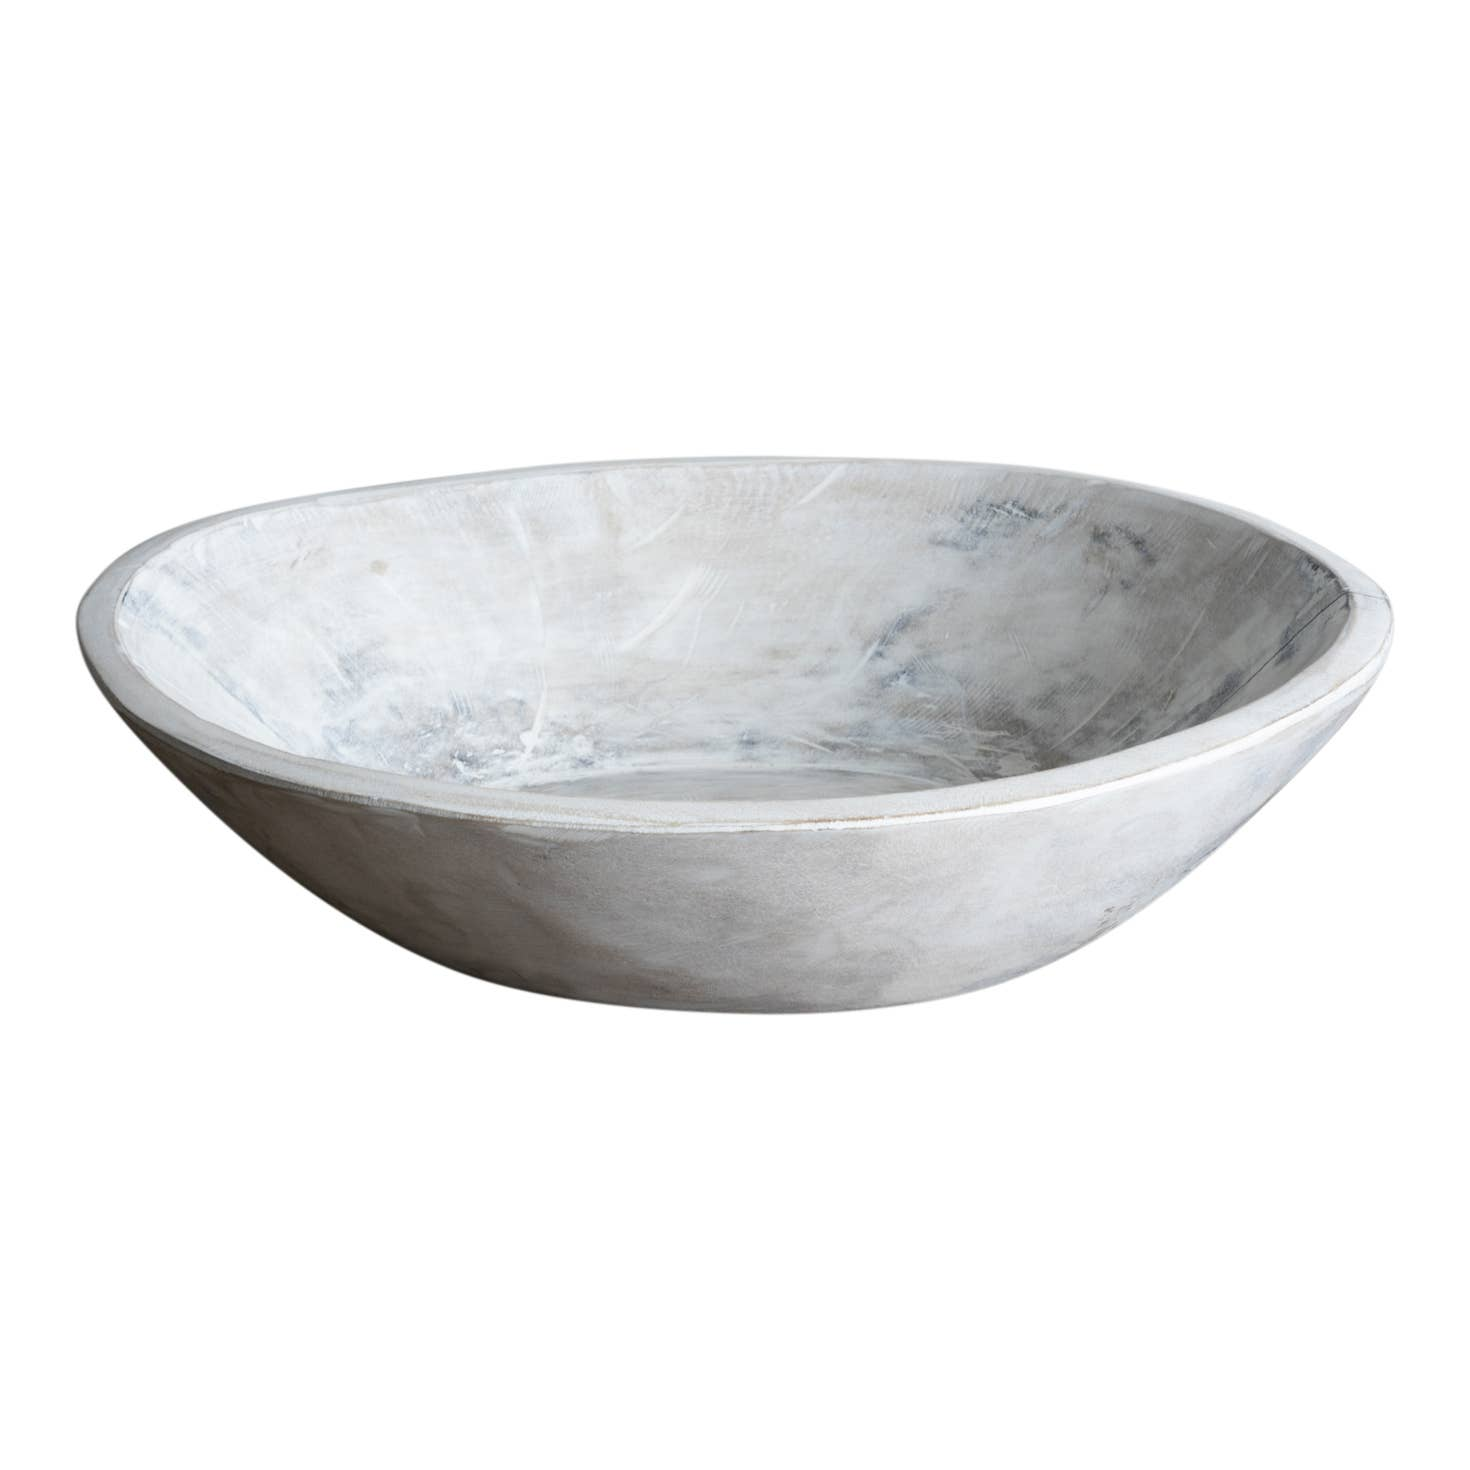 Made Market Co. - Found Dough Bowl White Wash Medium